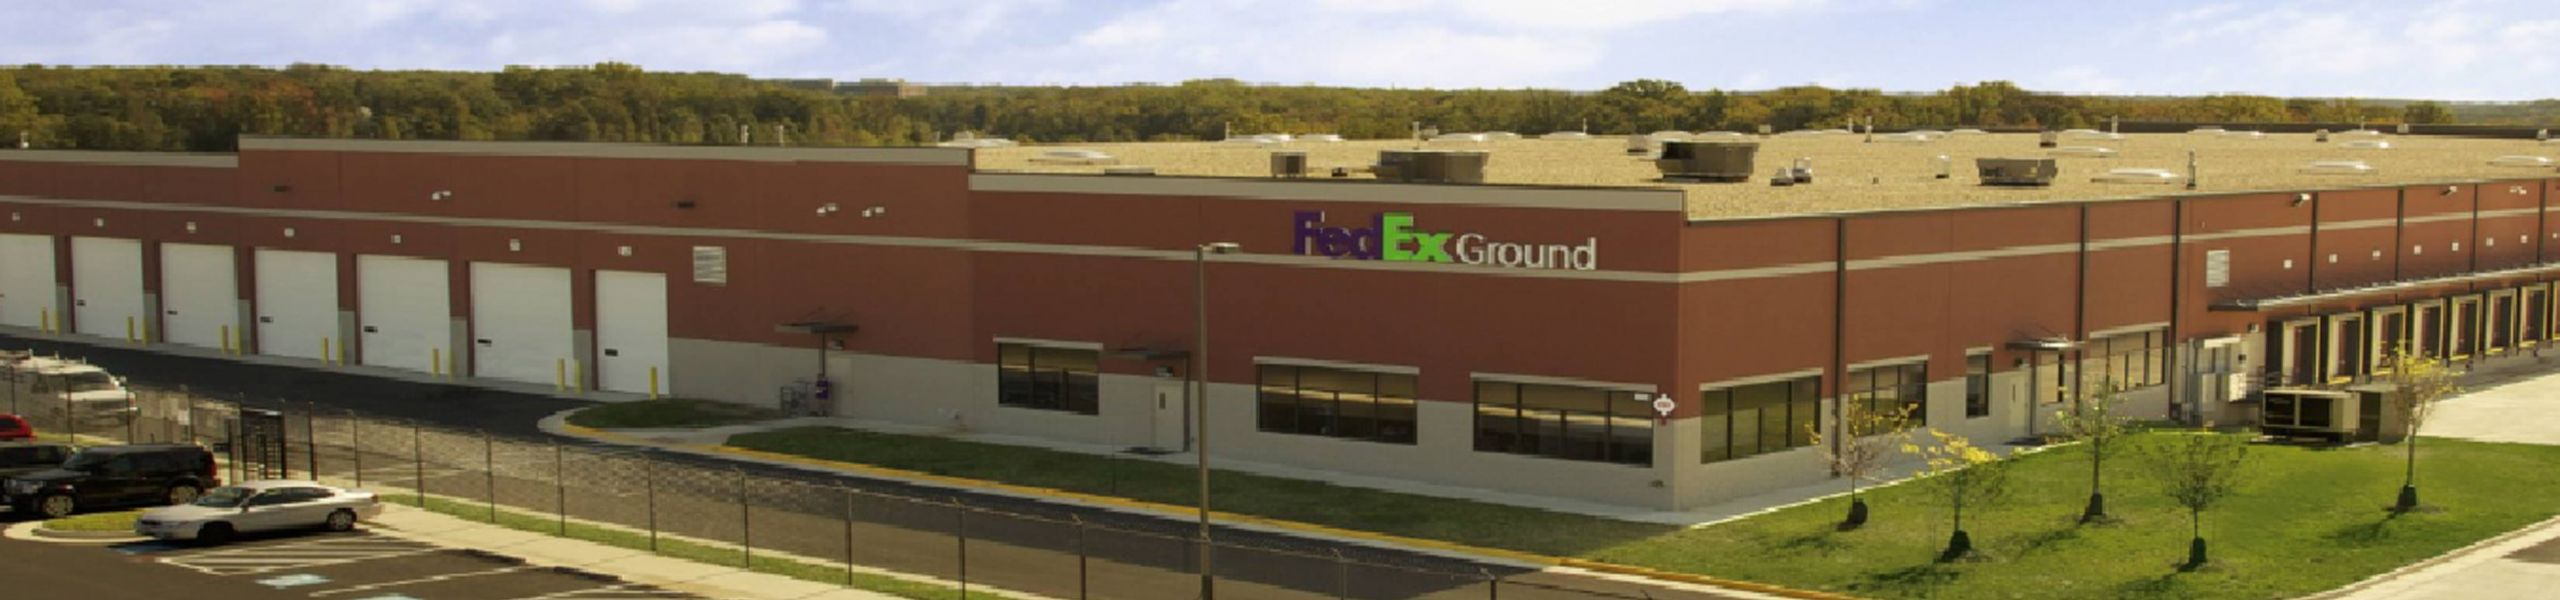 fed-ex ground header